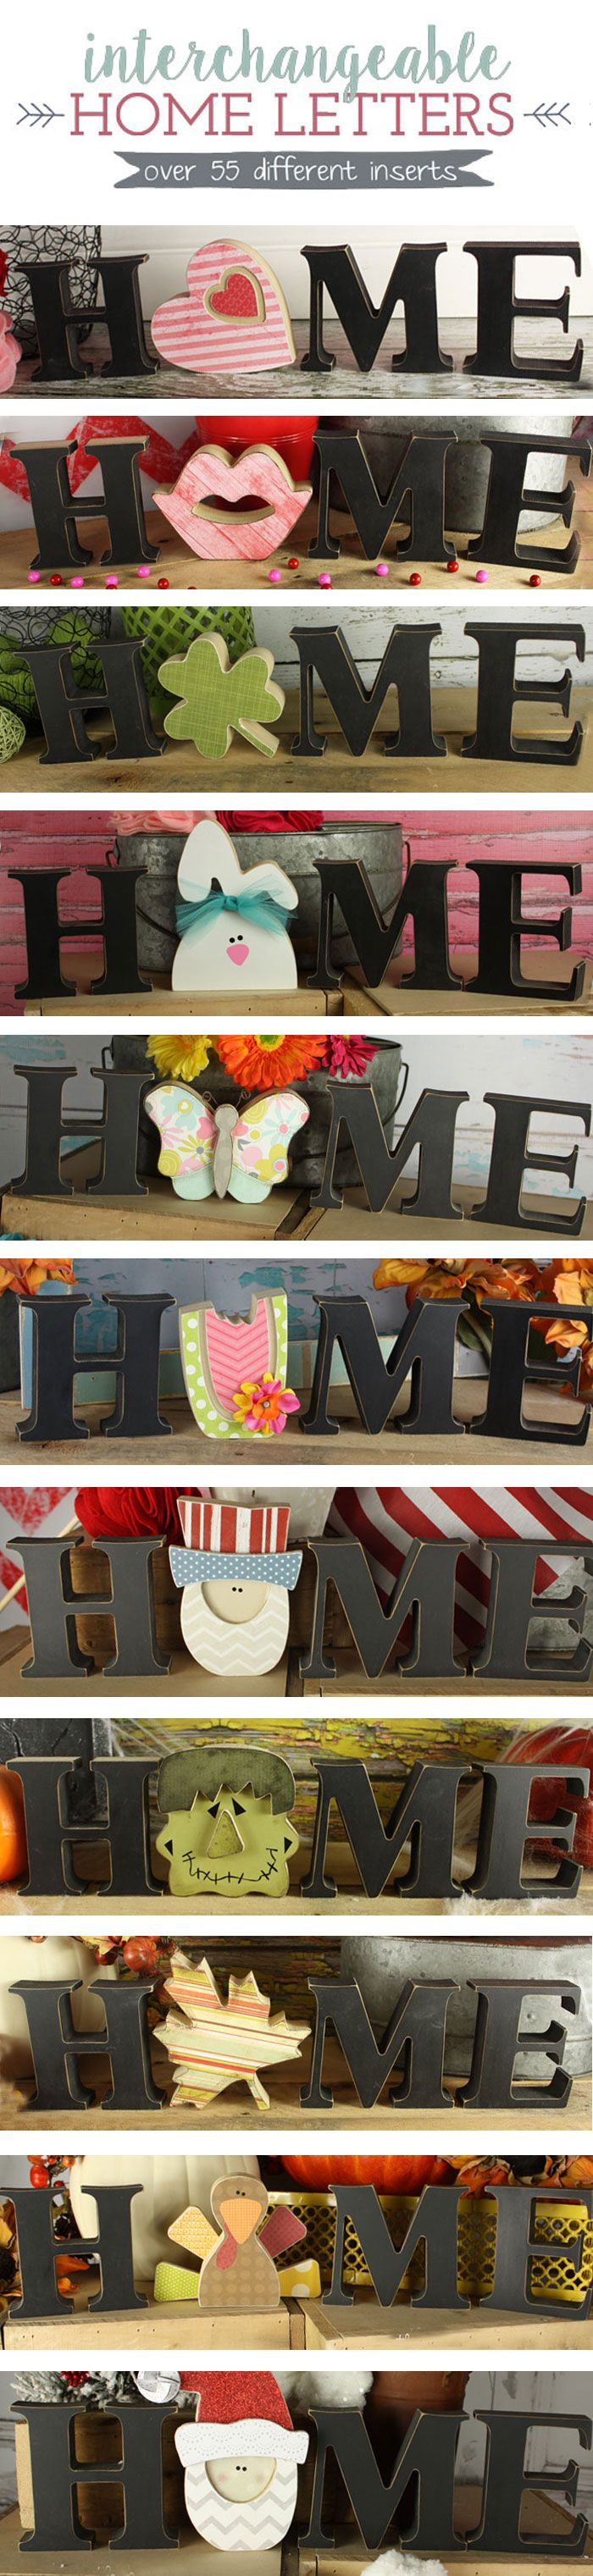 Interchangeable Home Letters. Over 55 different inserts ...